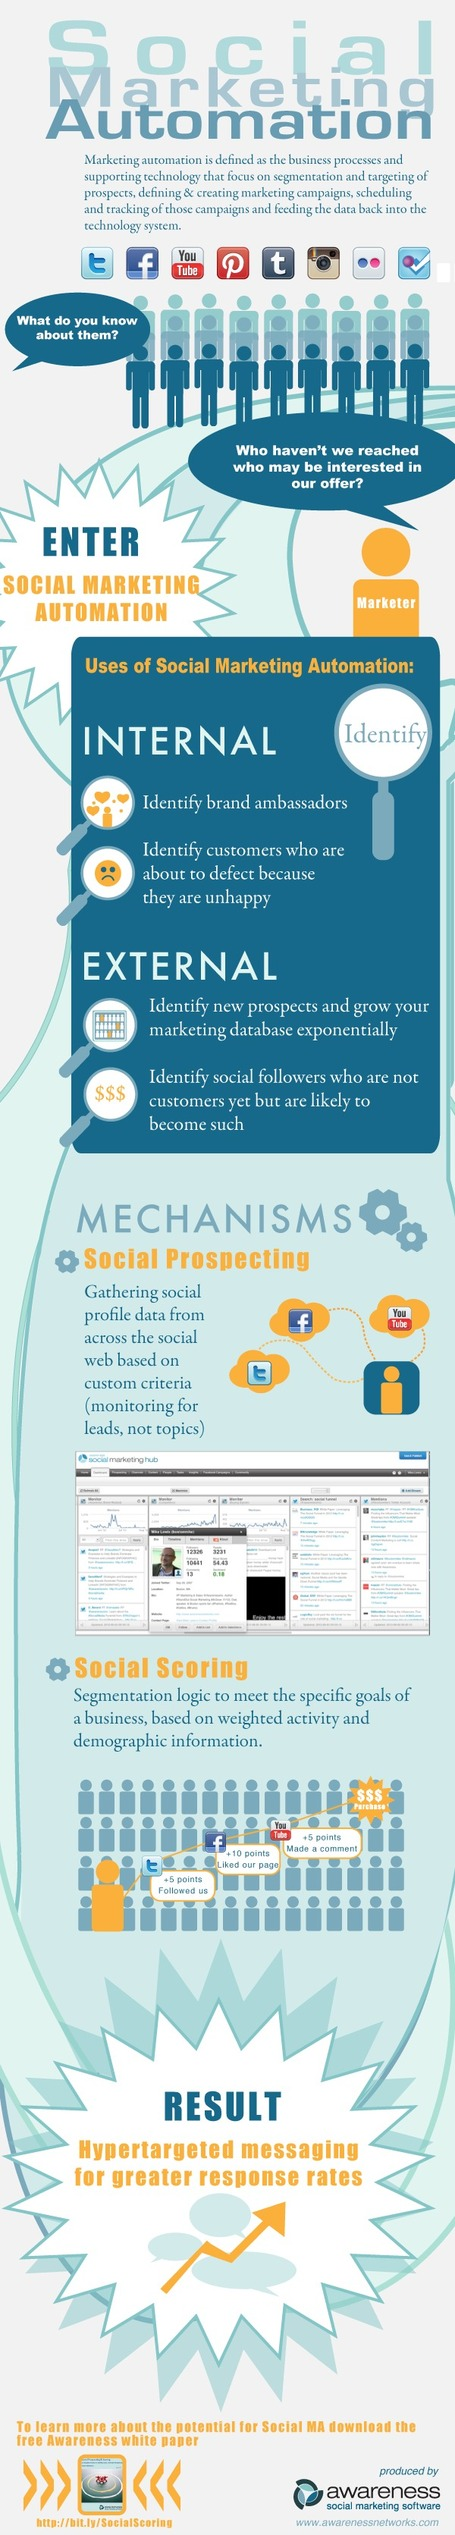 Case Study: Social Media Automation: How it works and Facts | All Infographics | OnlineMarketing | Scoop.it